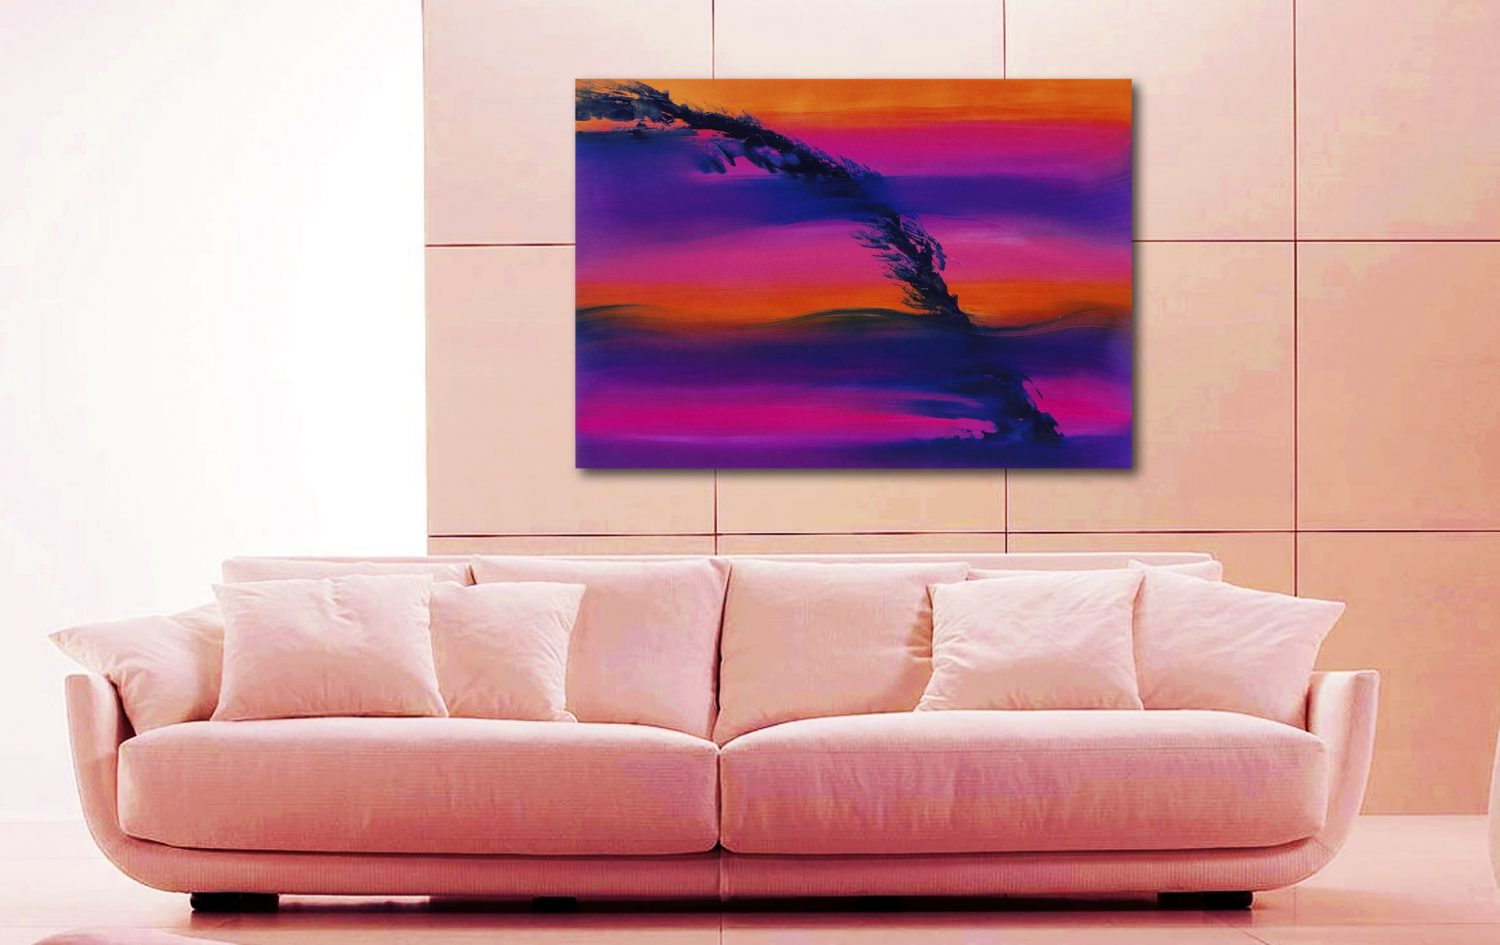 Skyline II 100x70 quadro dipinto originale astratto in vendita online